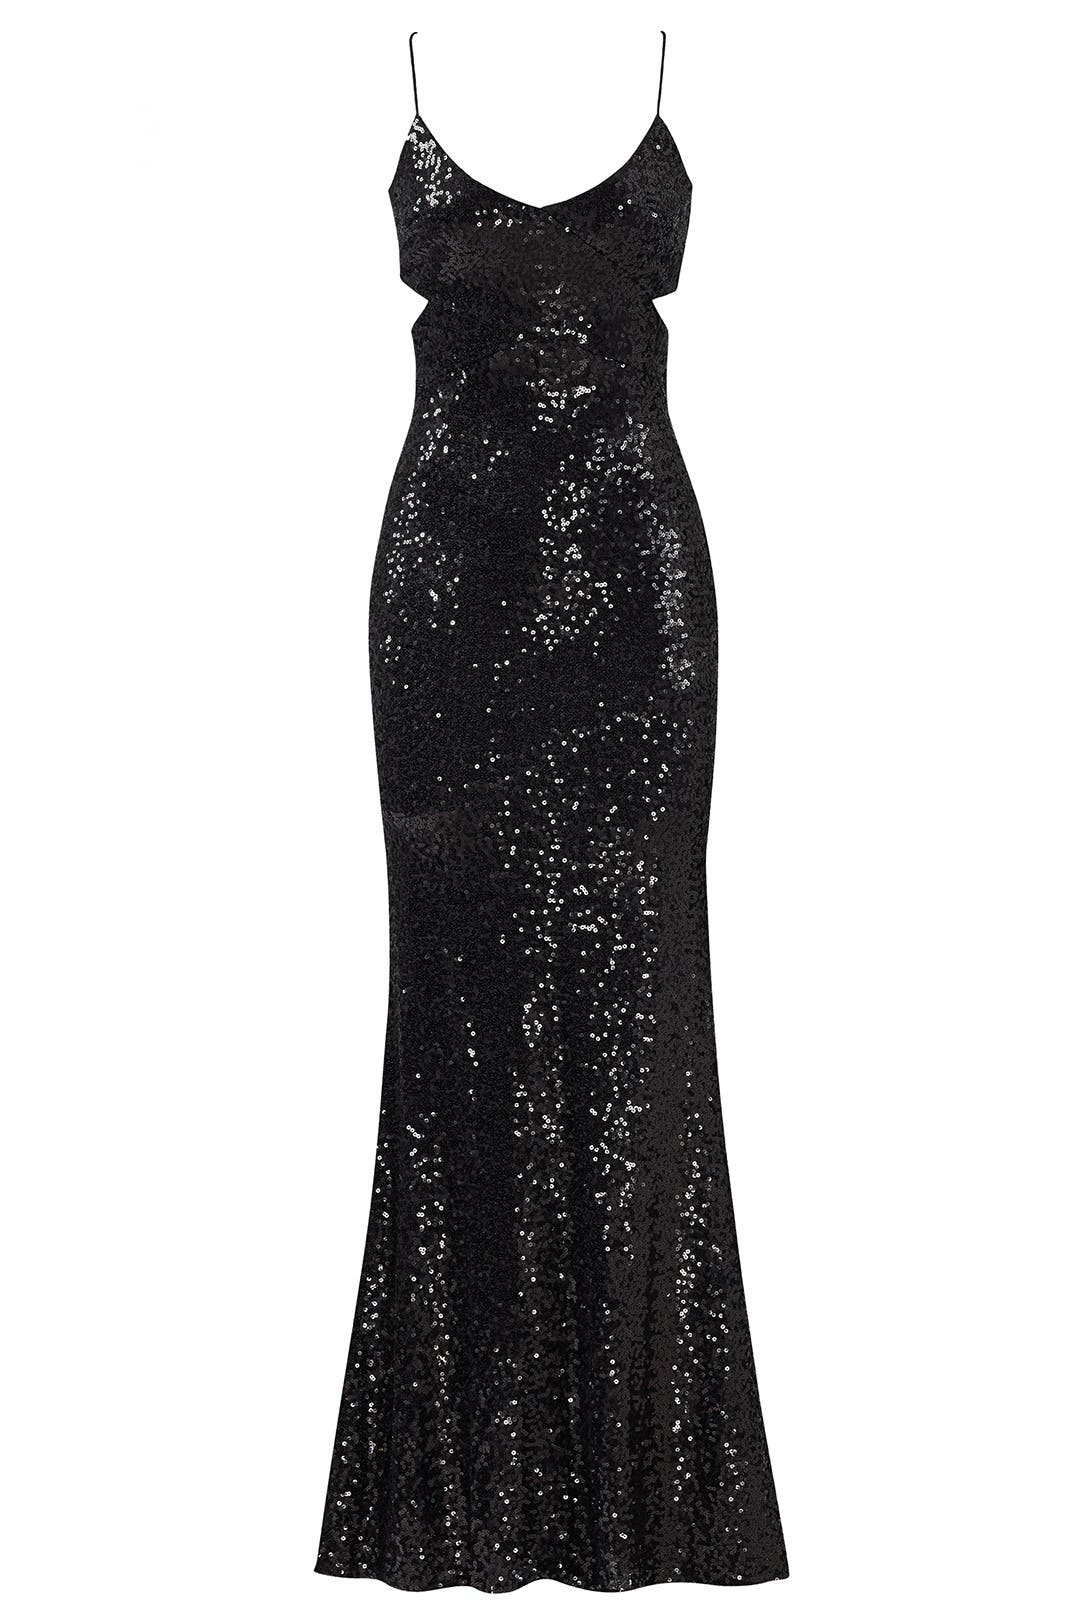 Black Sequin Cutout Gown by Badgley Mischka for $90 | Rent the Runway